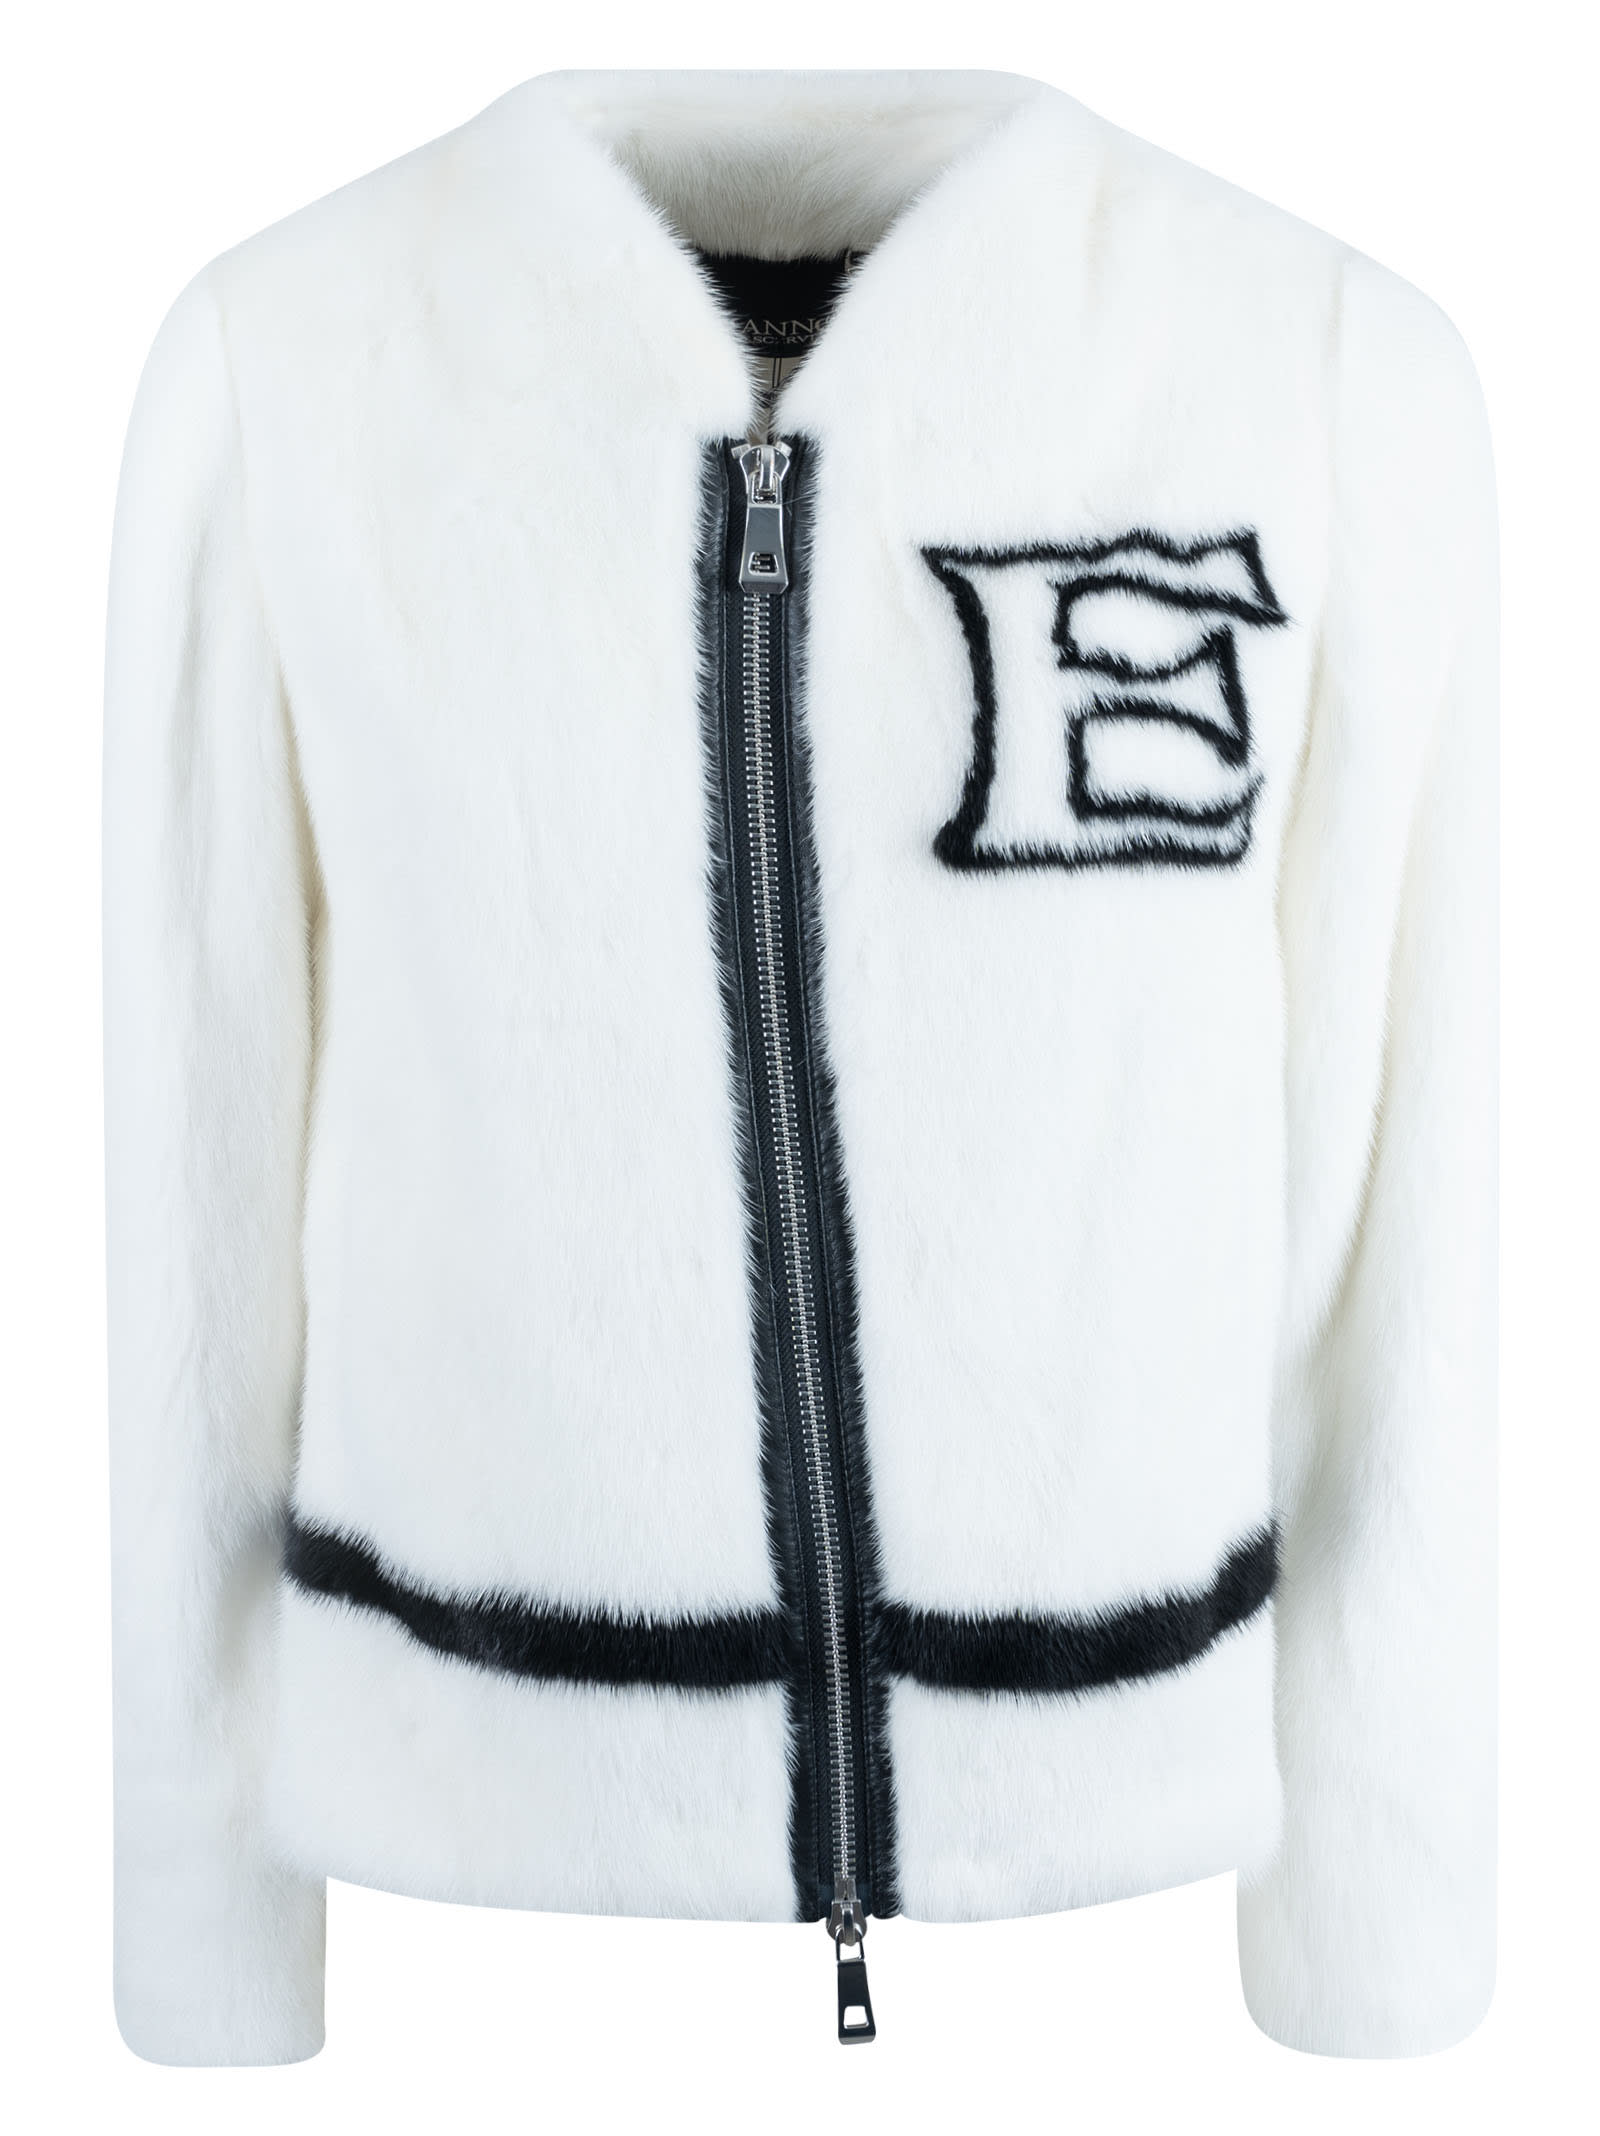 Ermanno Scervino Fur Applique Zipped Jacket